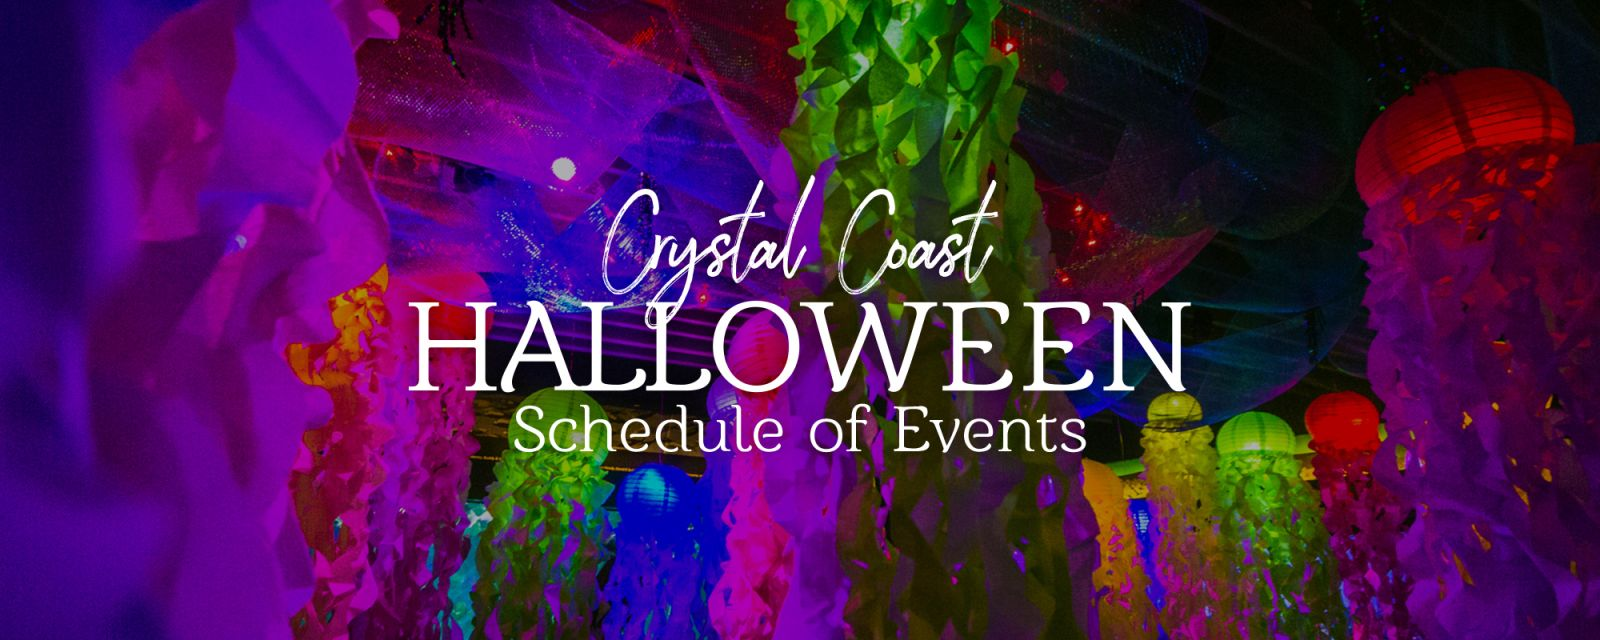 Crystal Coast Halloween Events